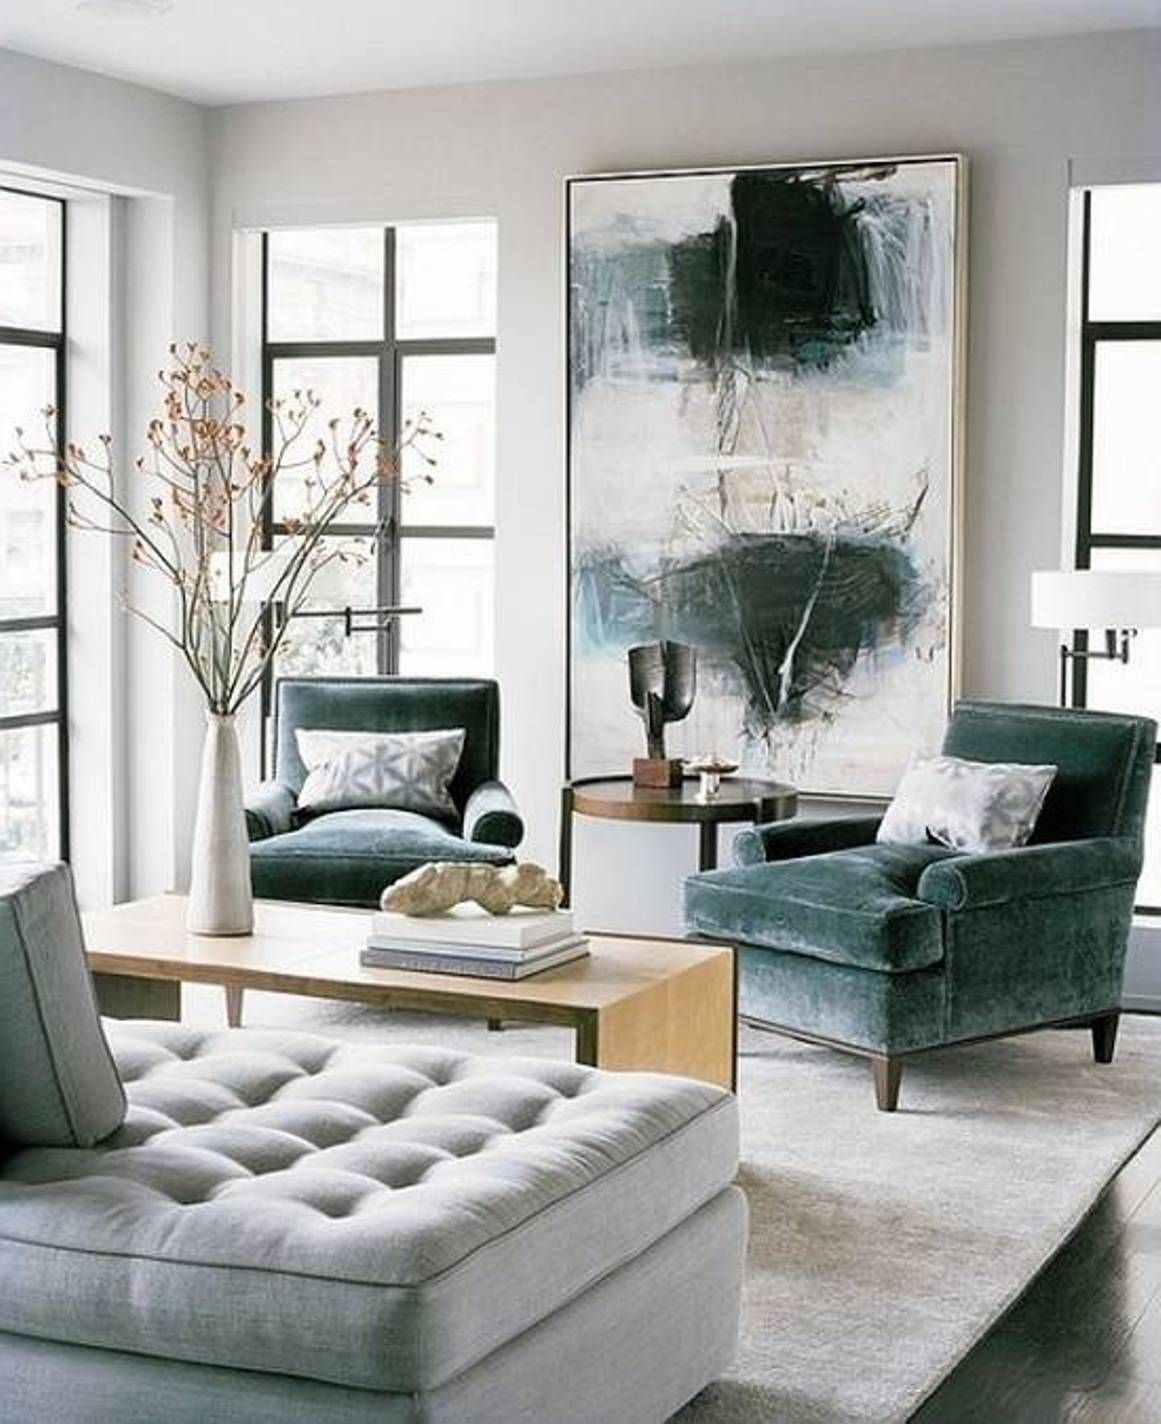 Living Room Decorating Style images about living room idea on pinterest modern rooms designs and furniture r